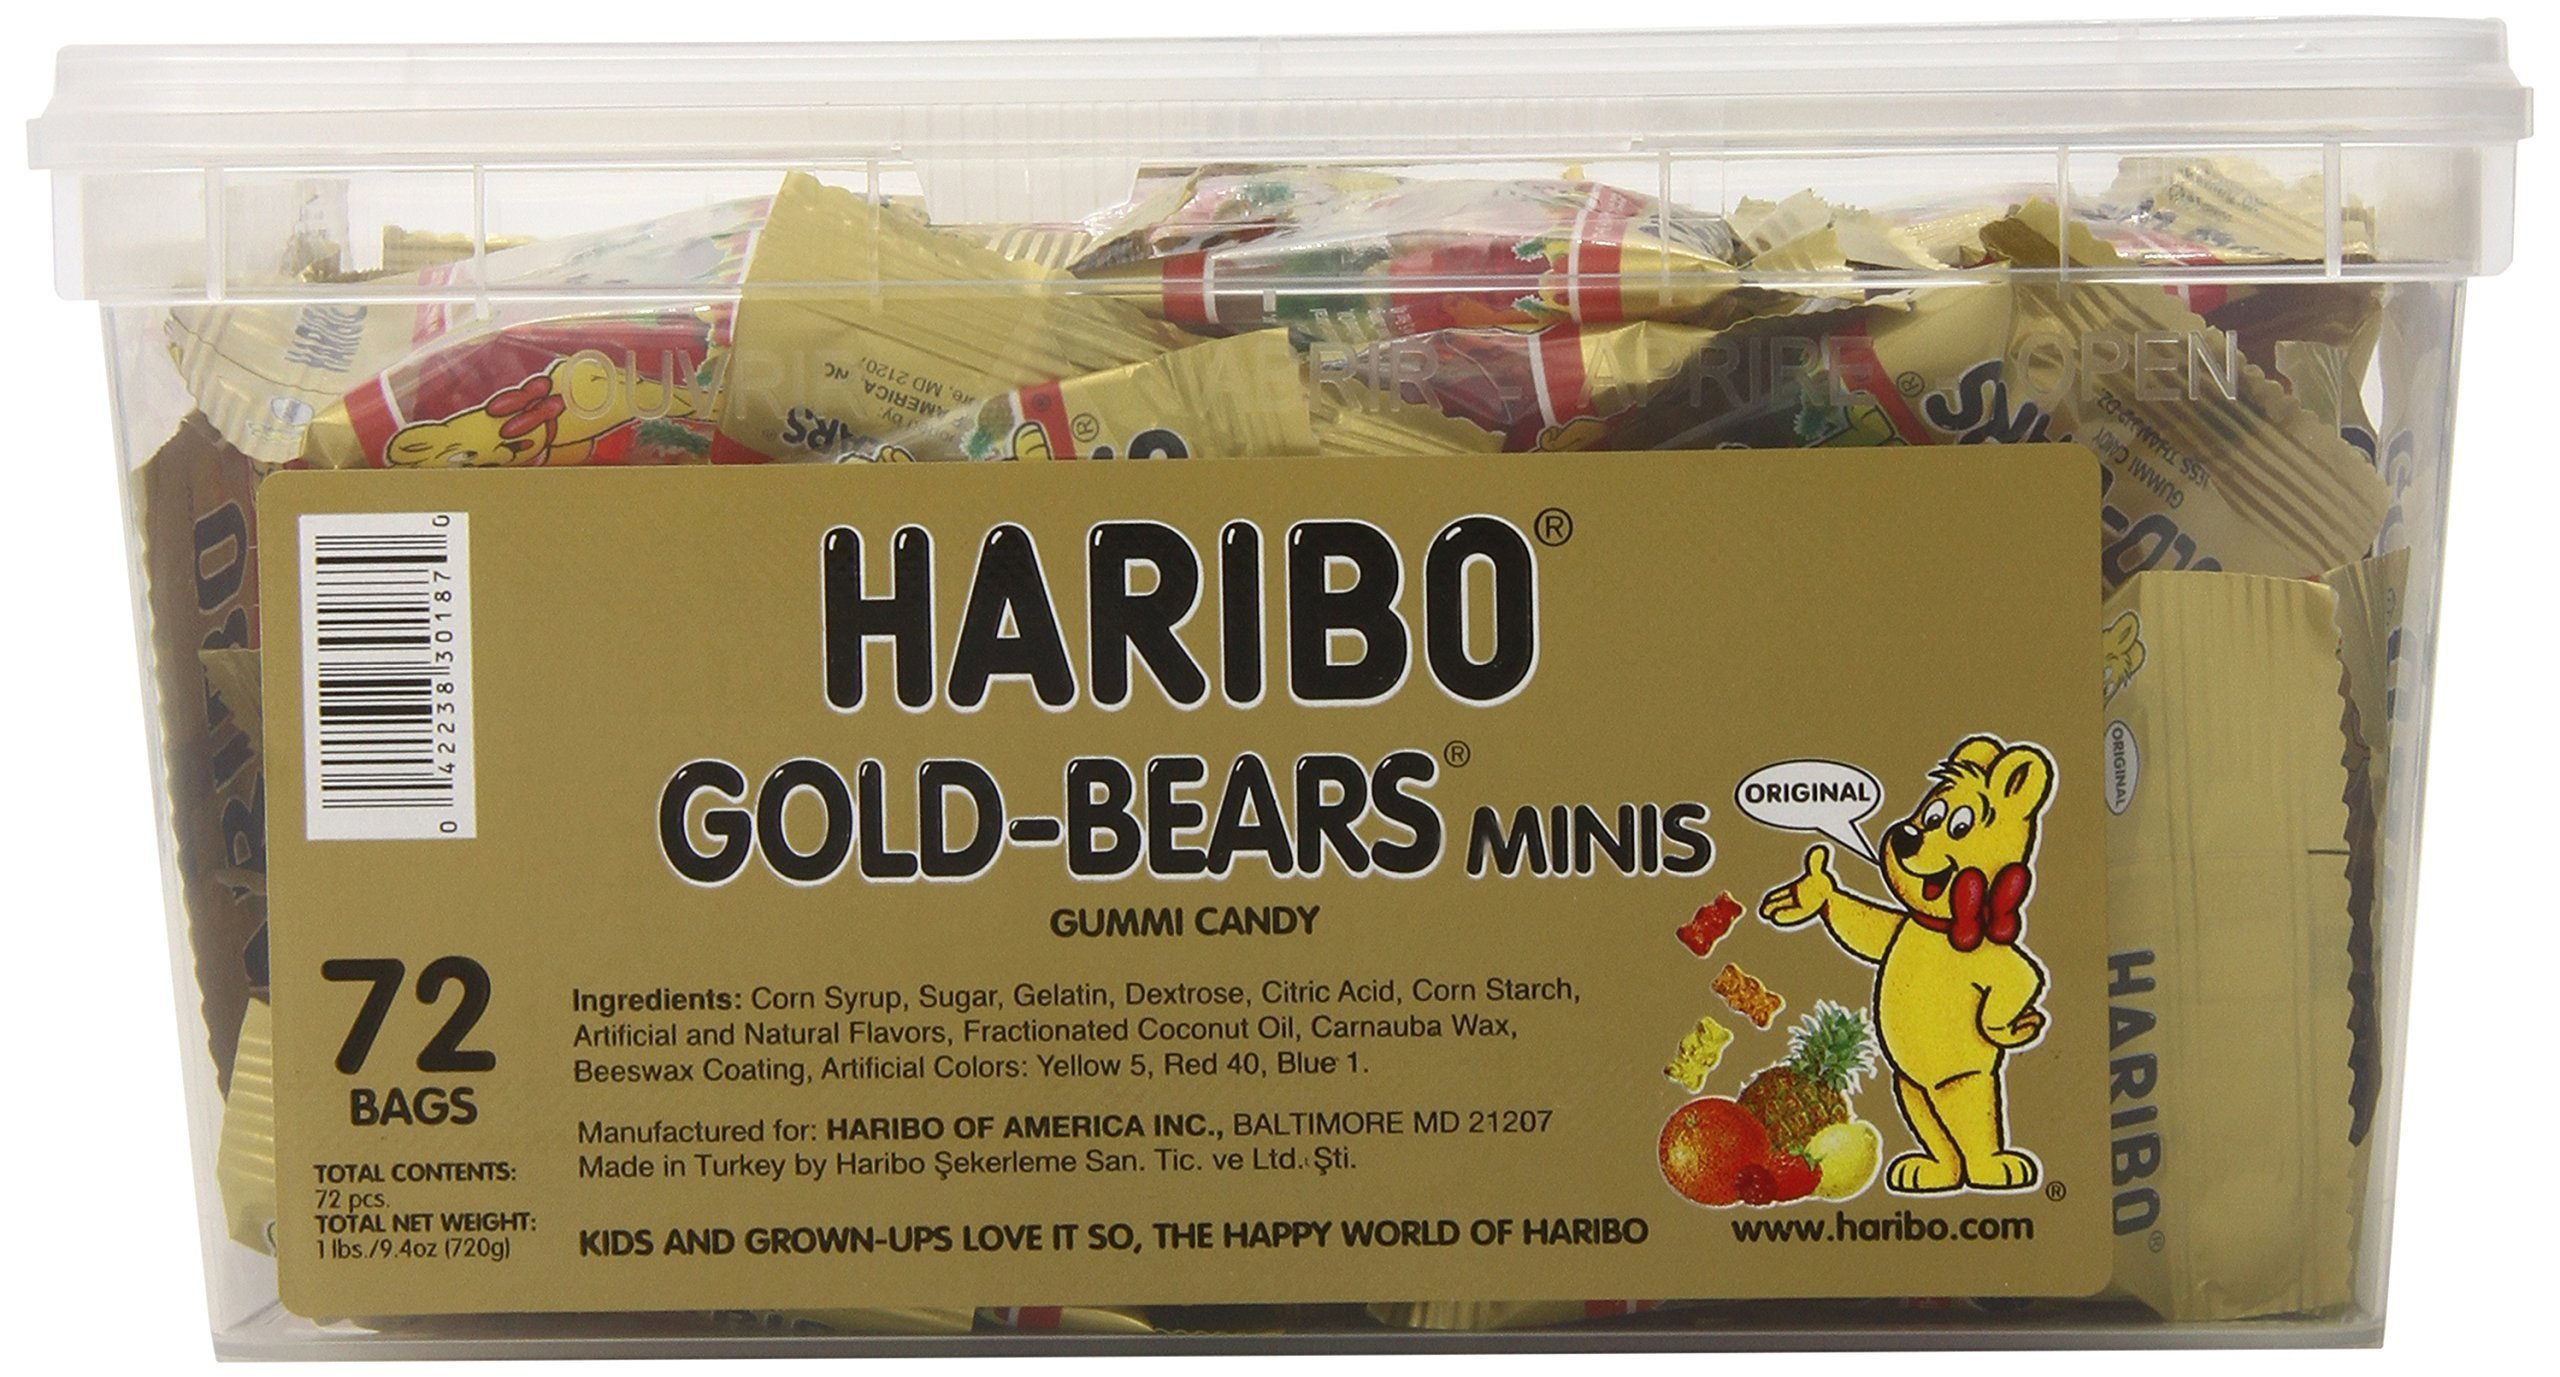 Haribo Gold-Bears Minis, 72-Count, 1 Pound 9.4 Ounce Original Bears in mini bags